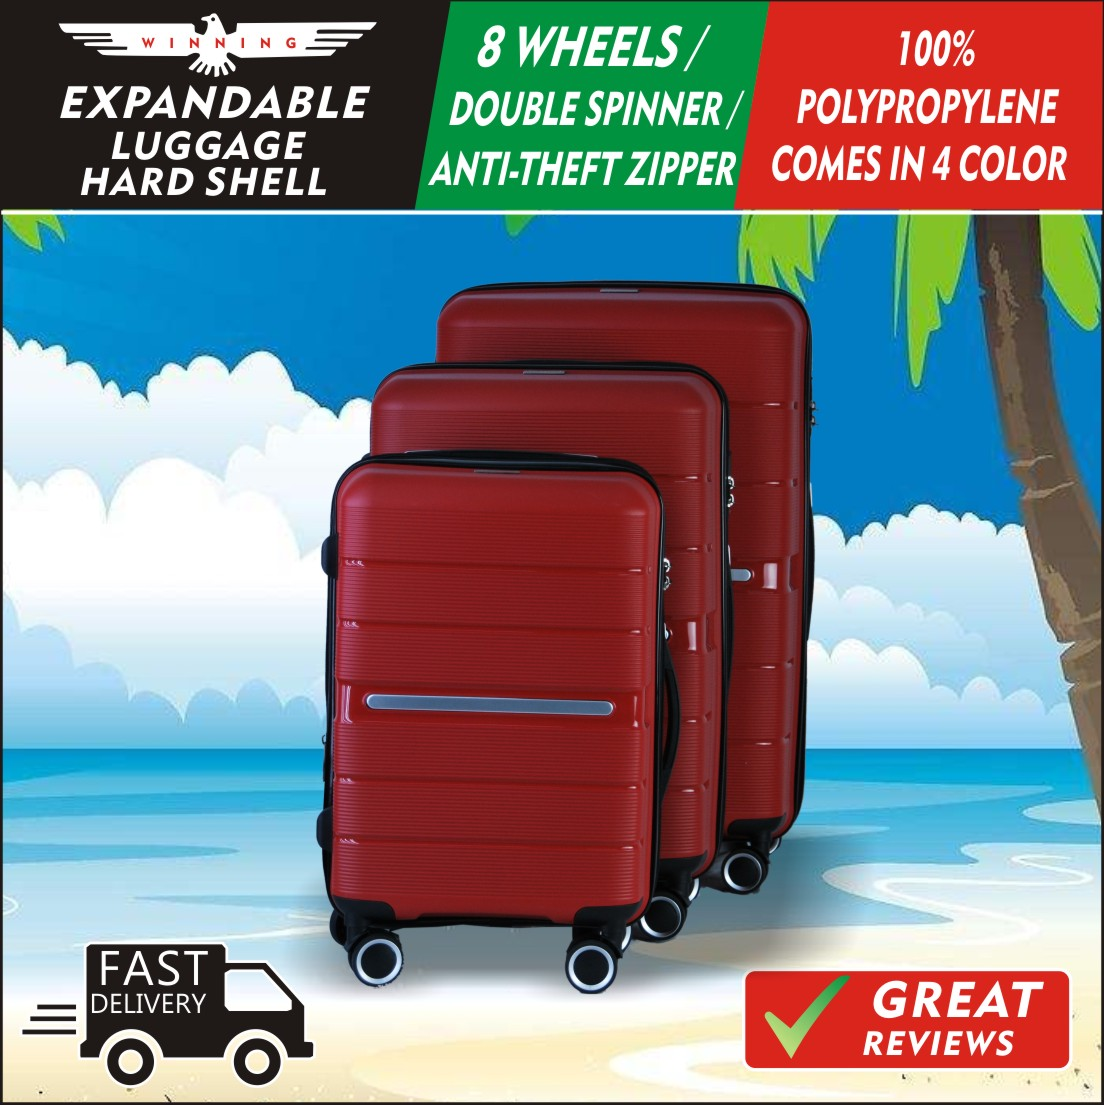 ★WINNING★ THE POLYPROPYLENE EVERYTHING YOU NEED UNDER ONE LUGGAGE